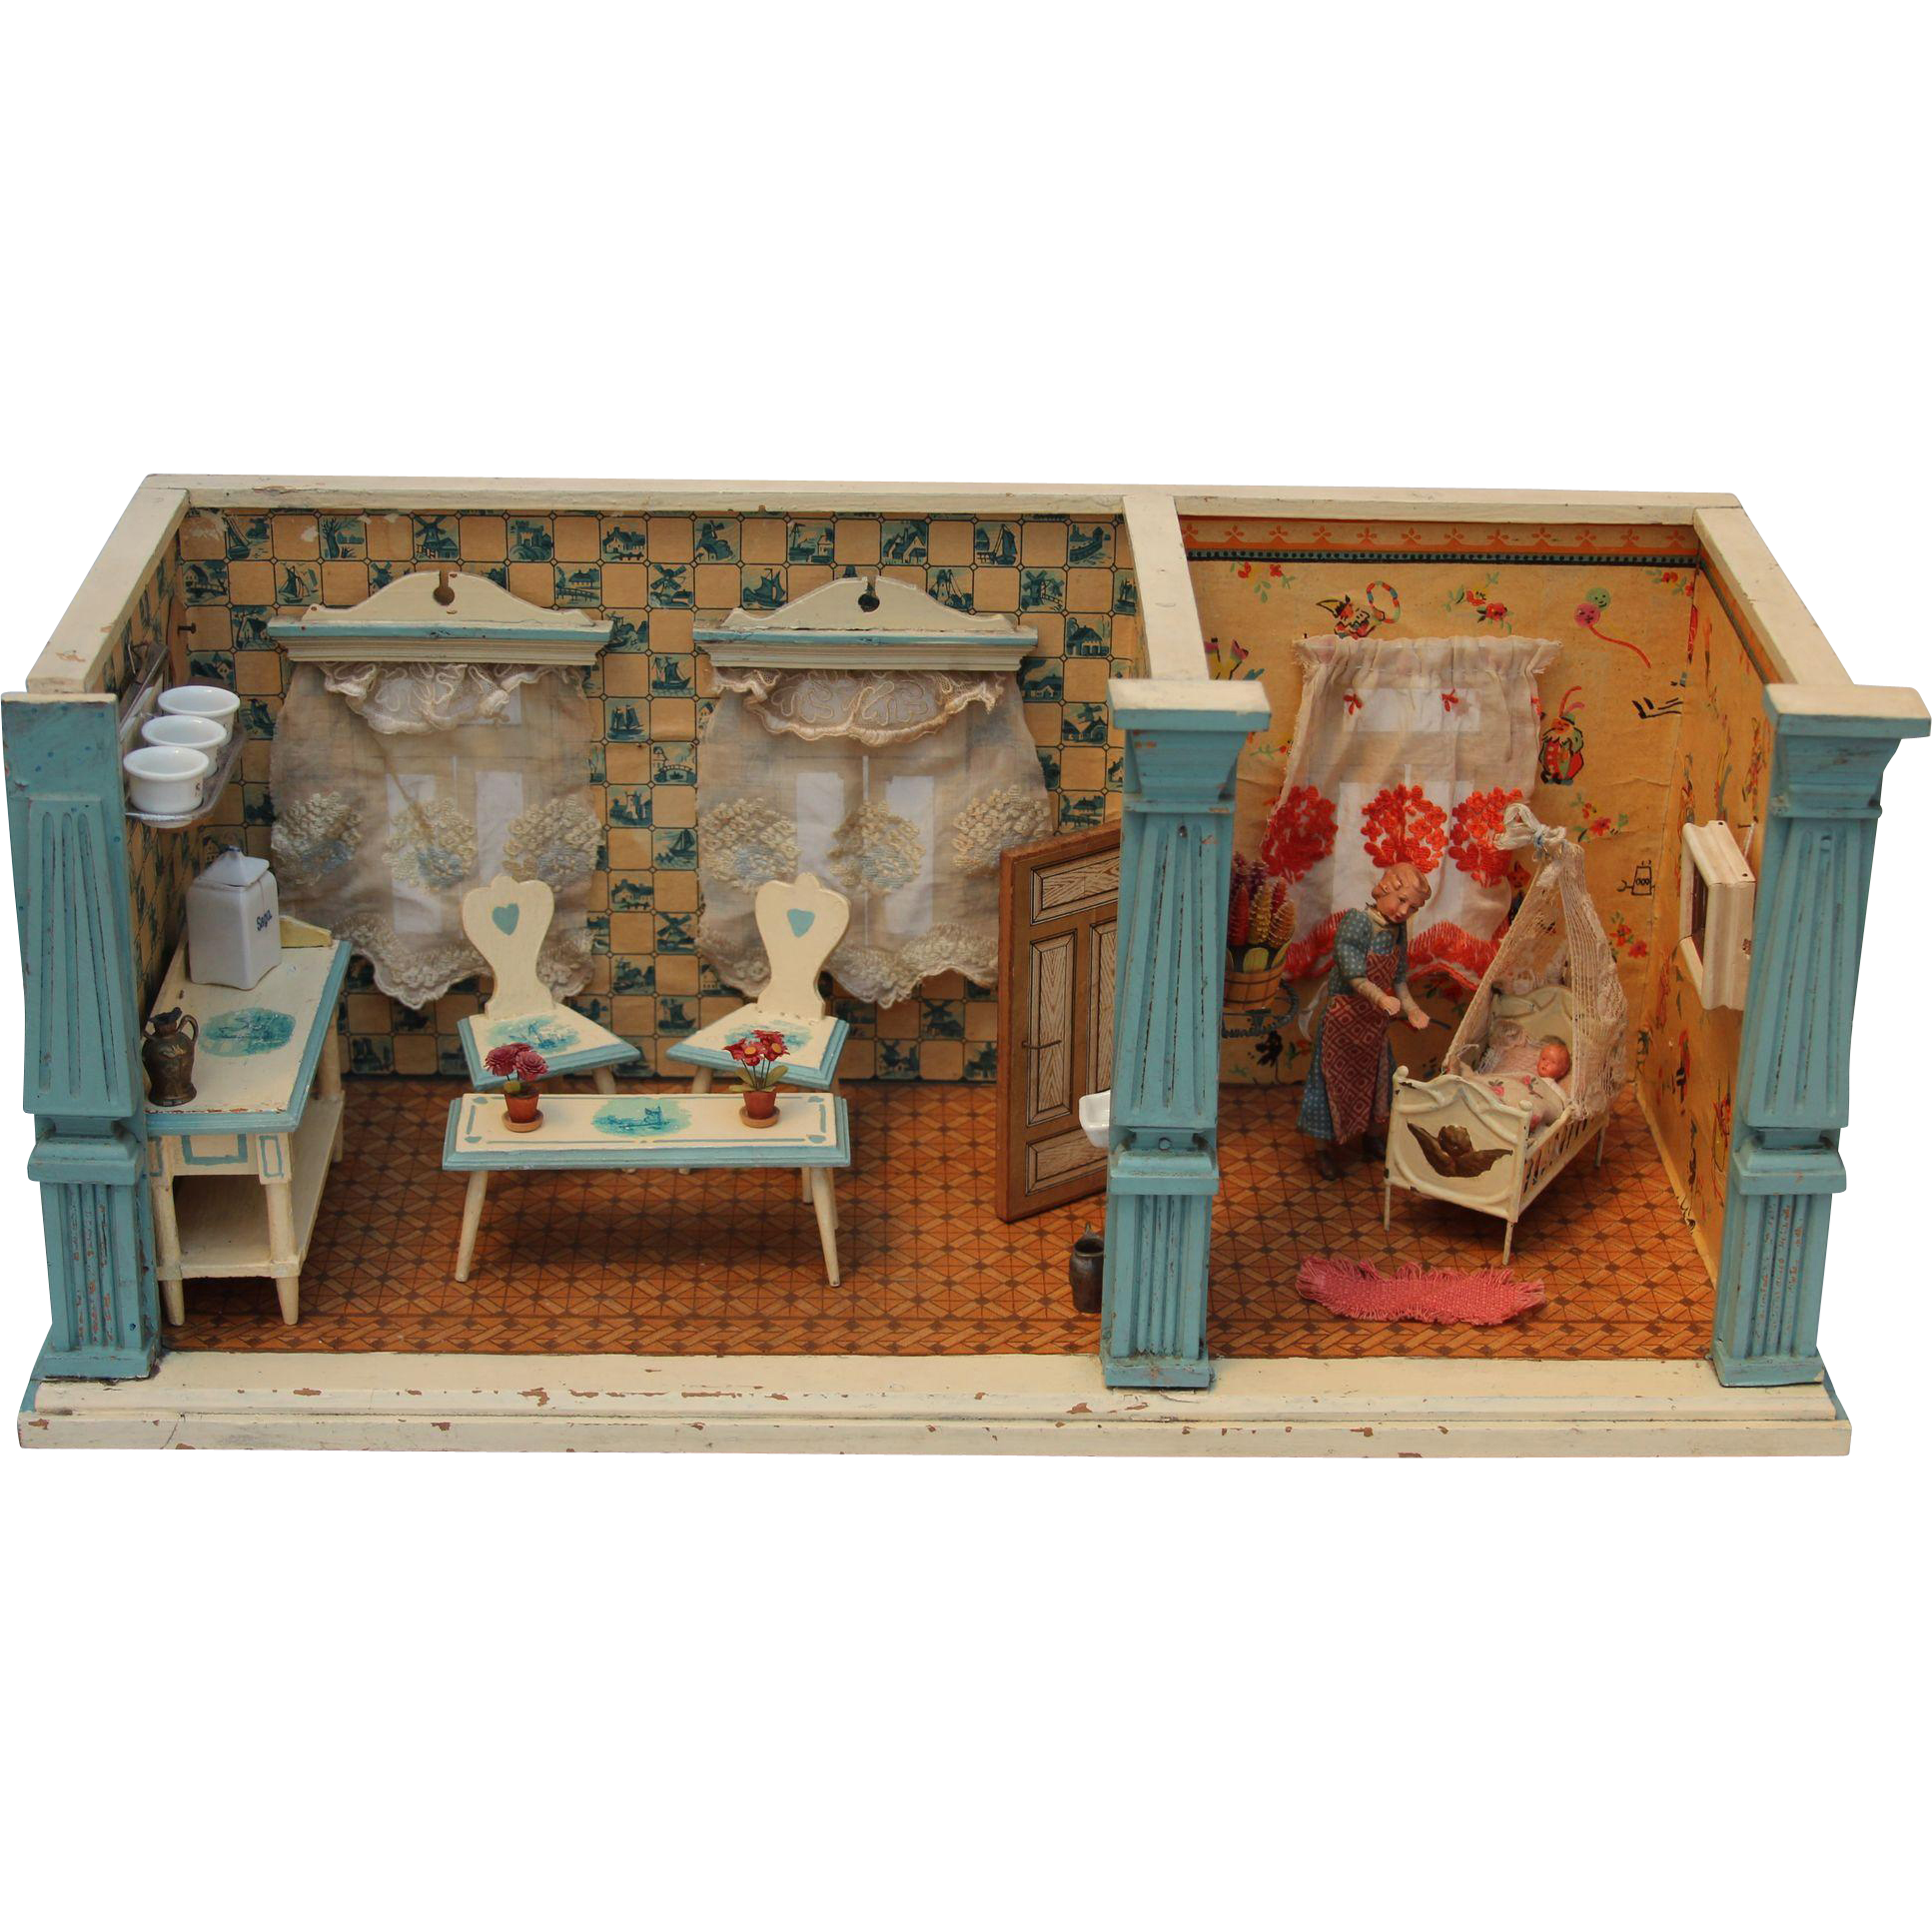 Mini Kitchen Room Box: Antique Doll House With Kitchen And Nursery German Delft